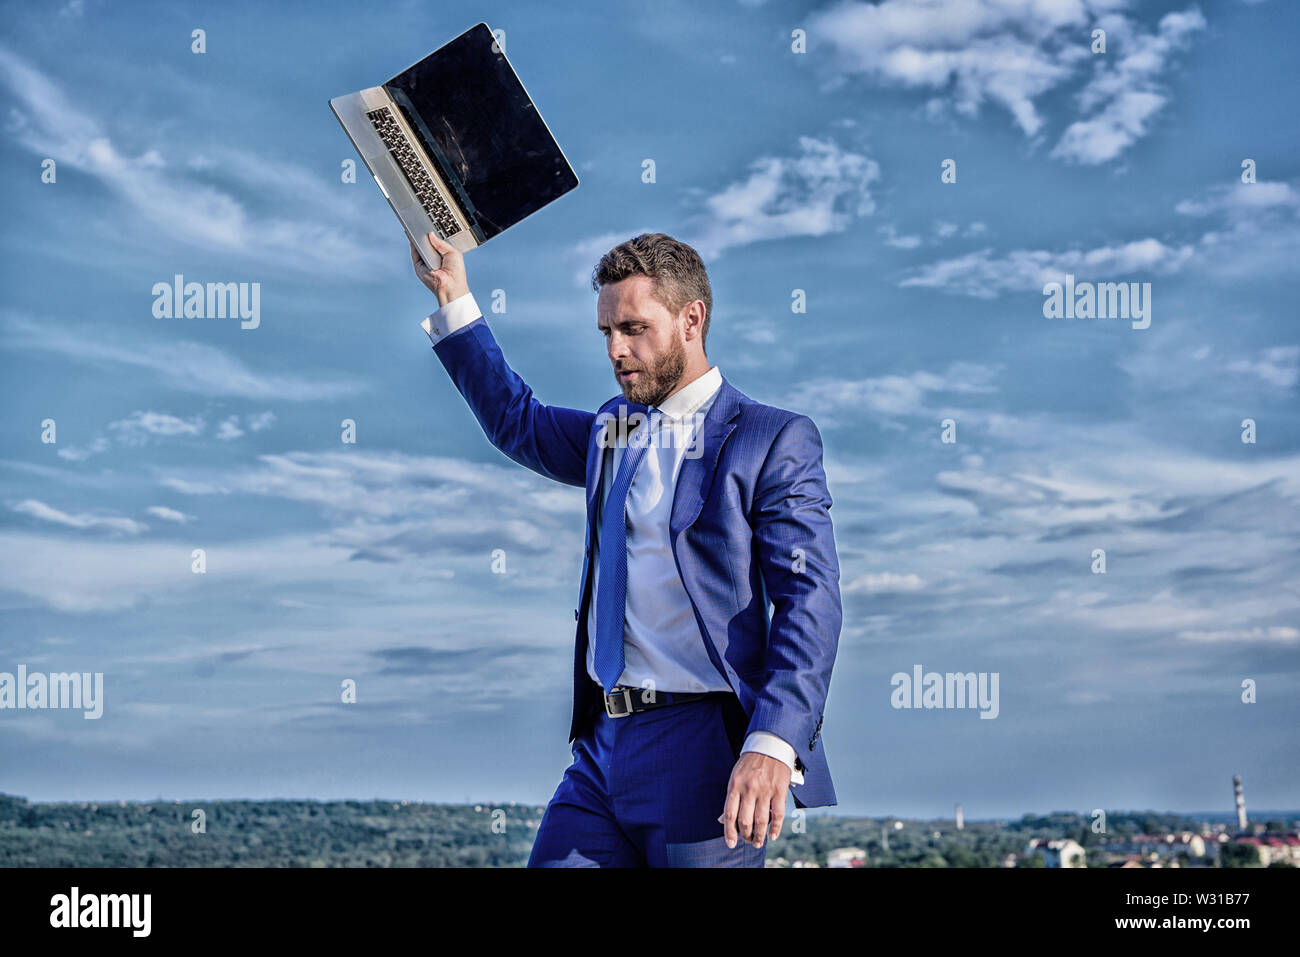 Looking for wifi network. Businessman suit outdoors sky background. Man raise up hand with laptop. Lack of coverage. Businessman with laptop wait while connect with internet. Connection problems. - Stock Image